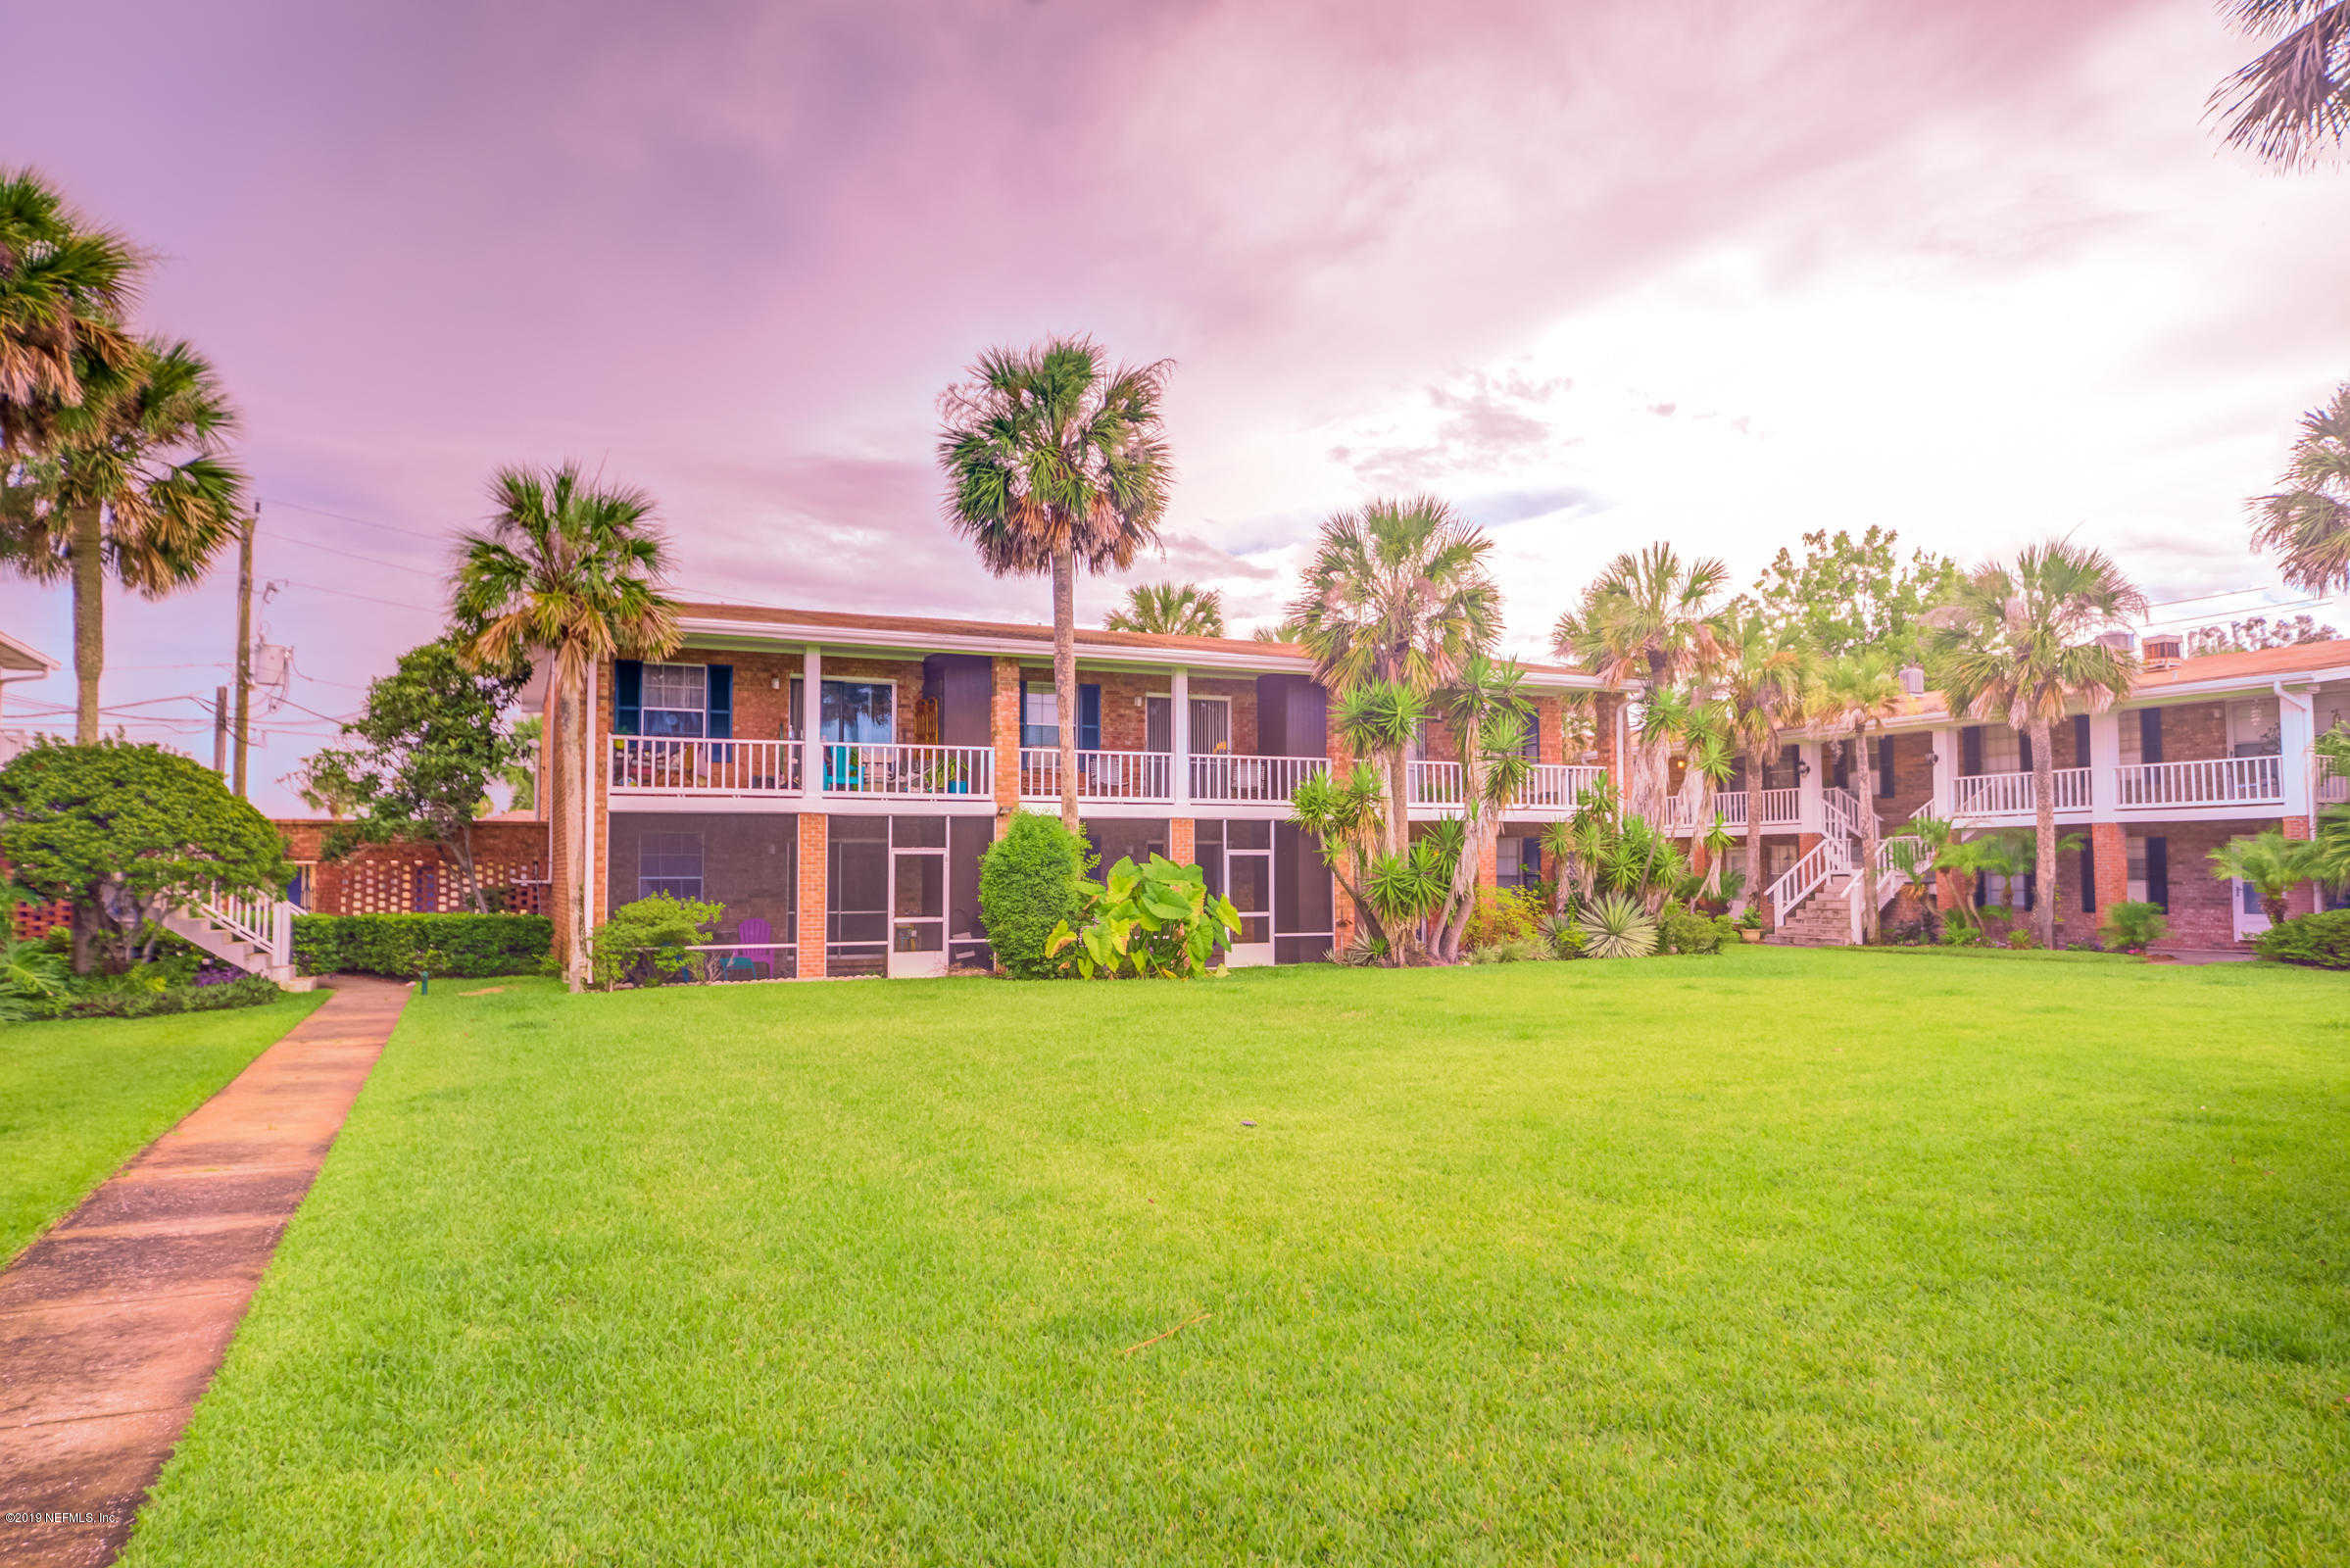 22 Comares Ave #5C, St Augustine, FL 32080 now has a new price of $125,000!